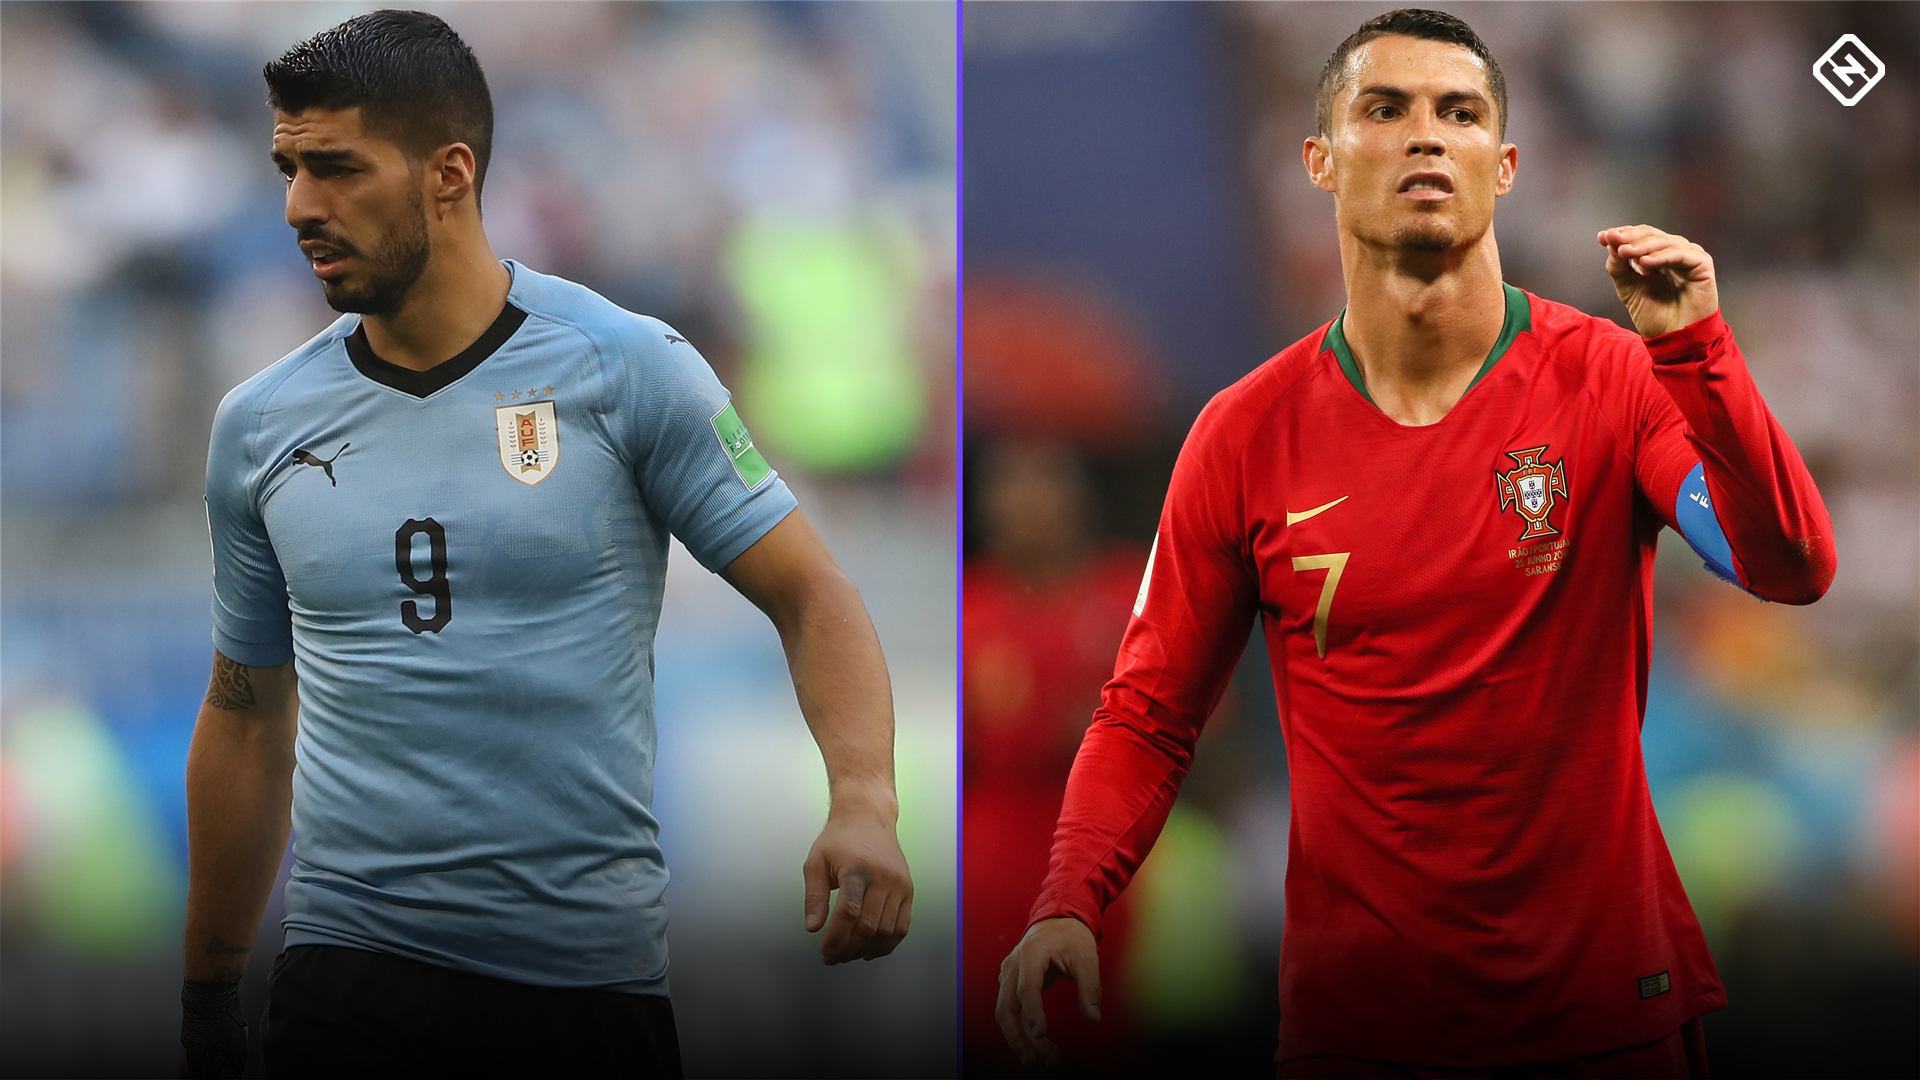 World Cup 2018: Uruguay vs. Portugal score, updates, highlights